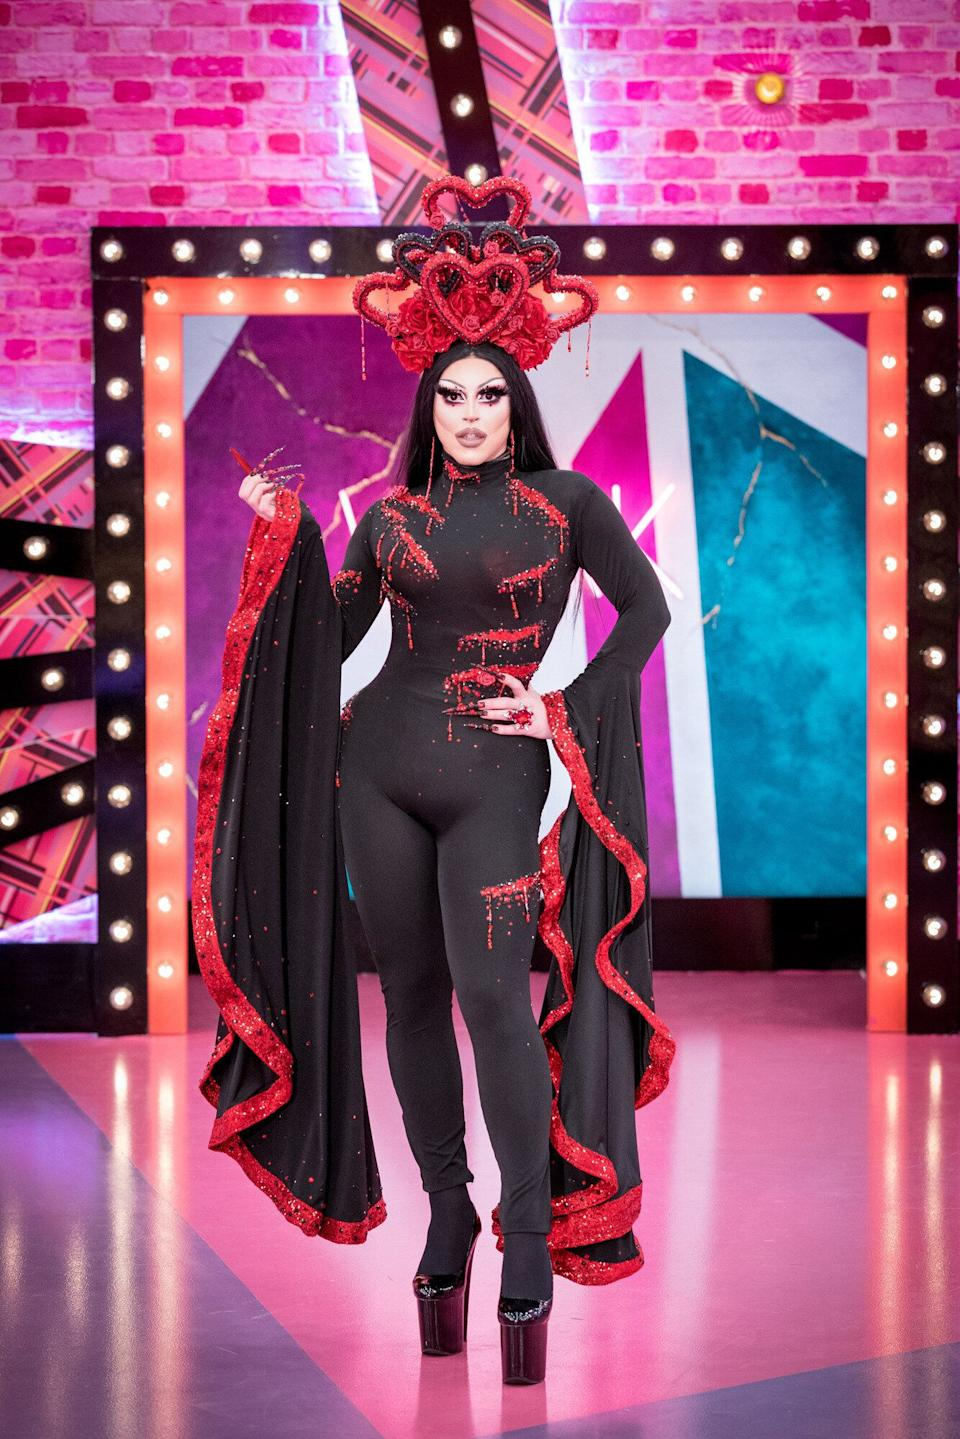 Cherry certainly made an impression with her Drag Race entrance (Photo: BBC/World of Wonder/Guy Levy)